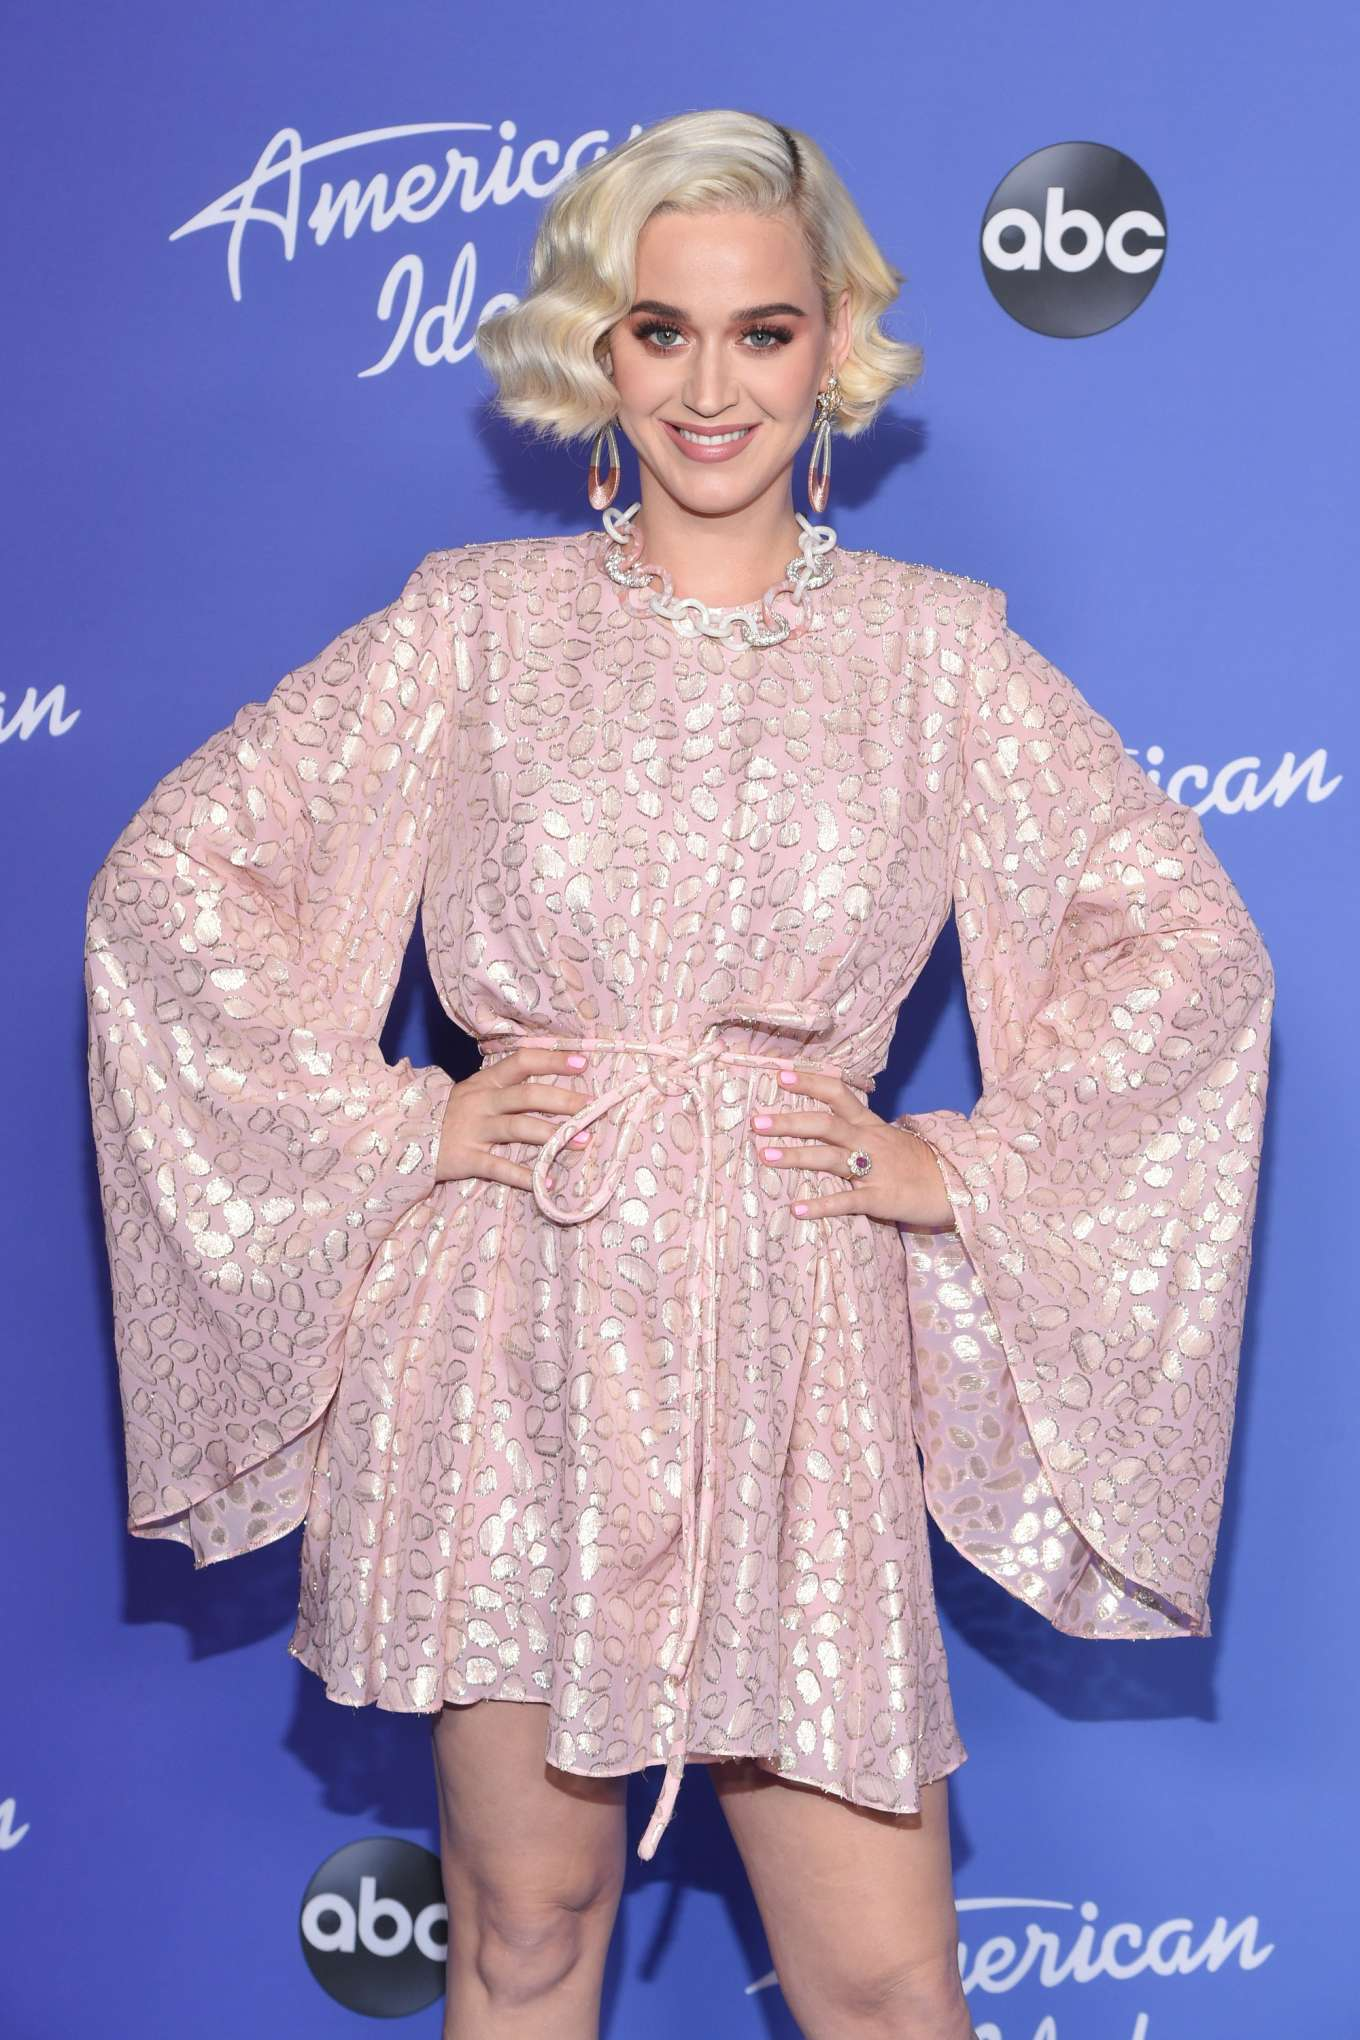 Katy Perry 2020 : Katy Perry – premiere event for new American Idol season in Hollywood-11